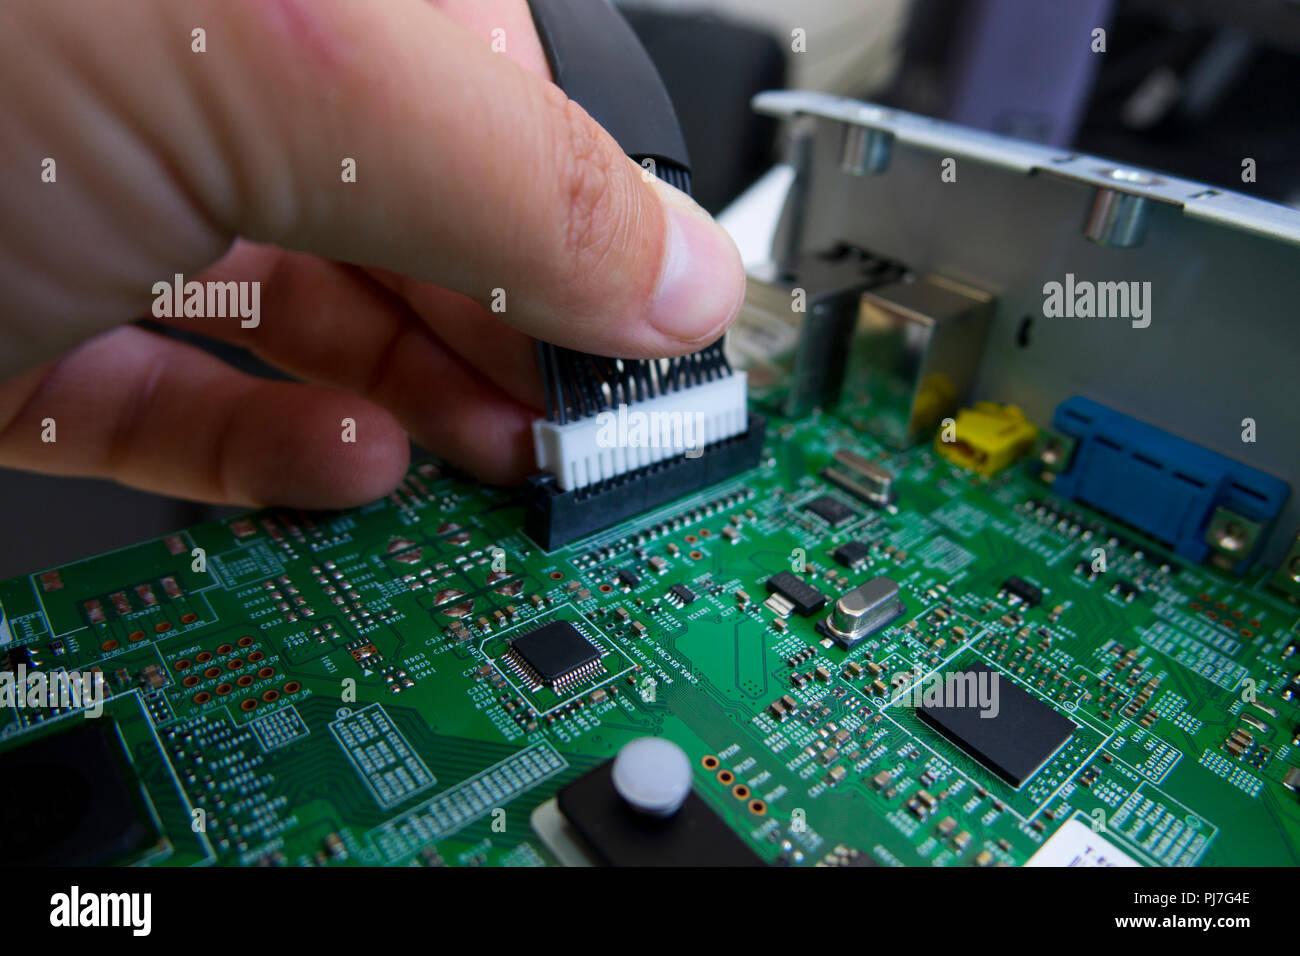 Quality Control And Assembly Of Smt Printed Components On Circuit Pcba Or Board In Qc Lab Pcb Manufacturing High Tech Factory